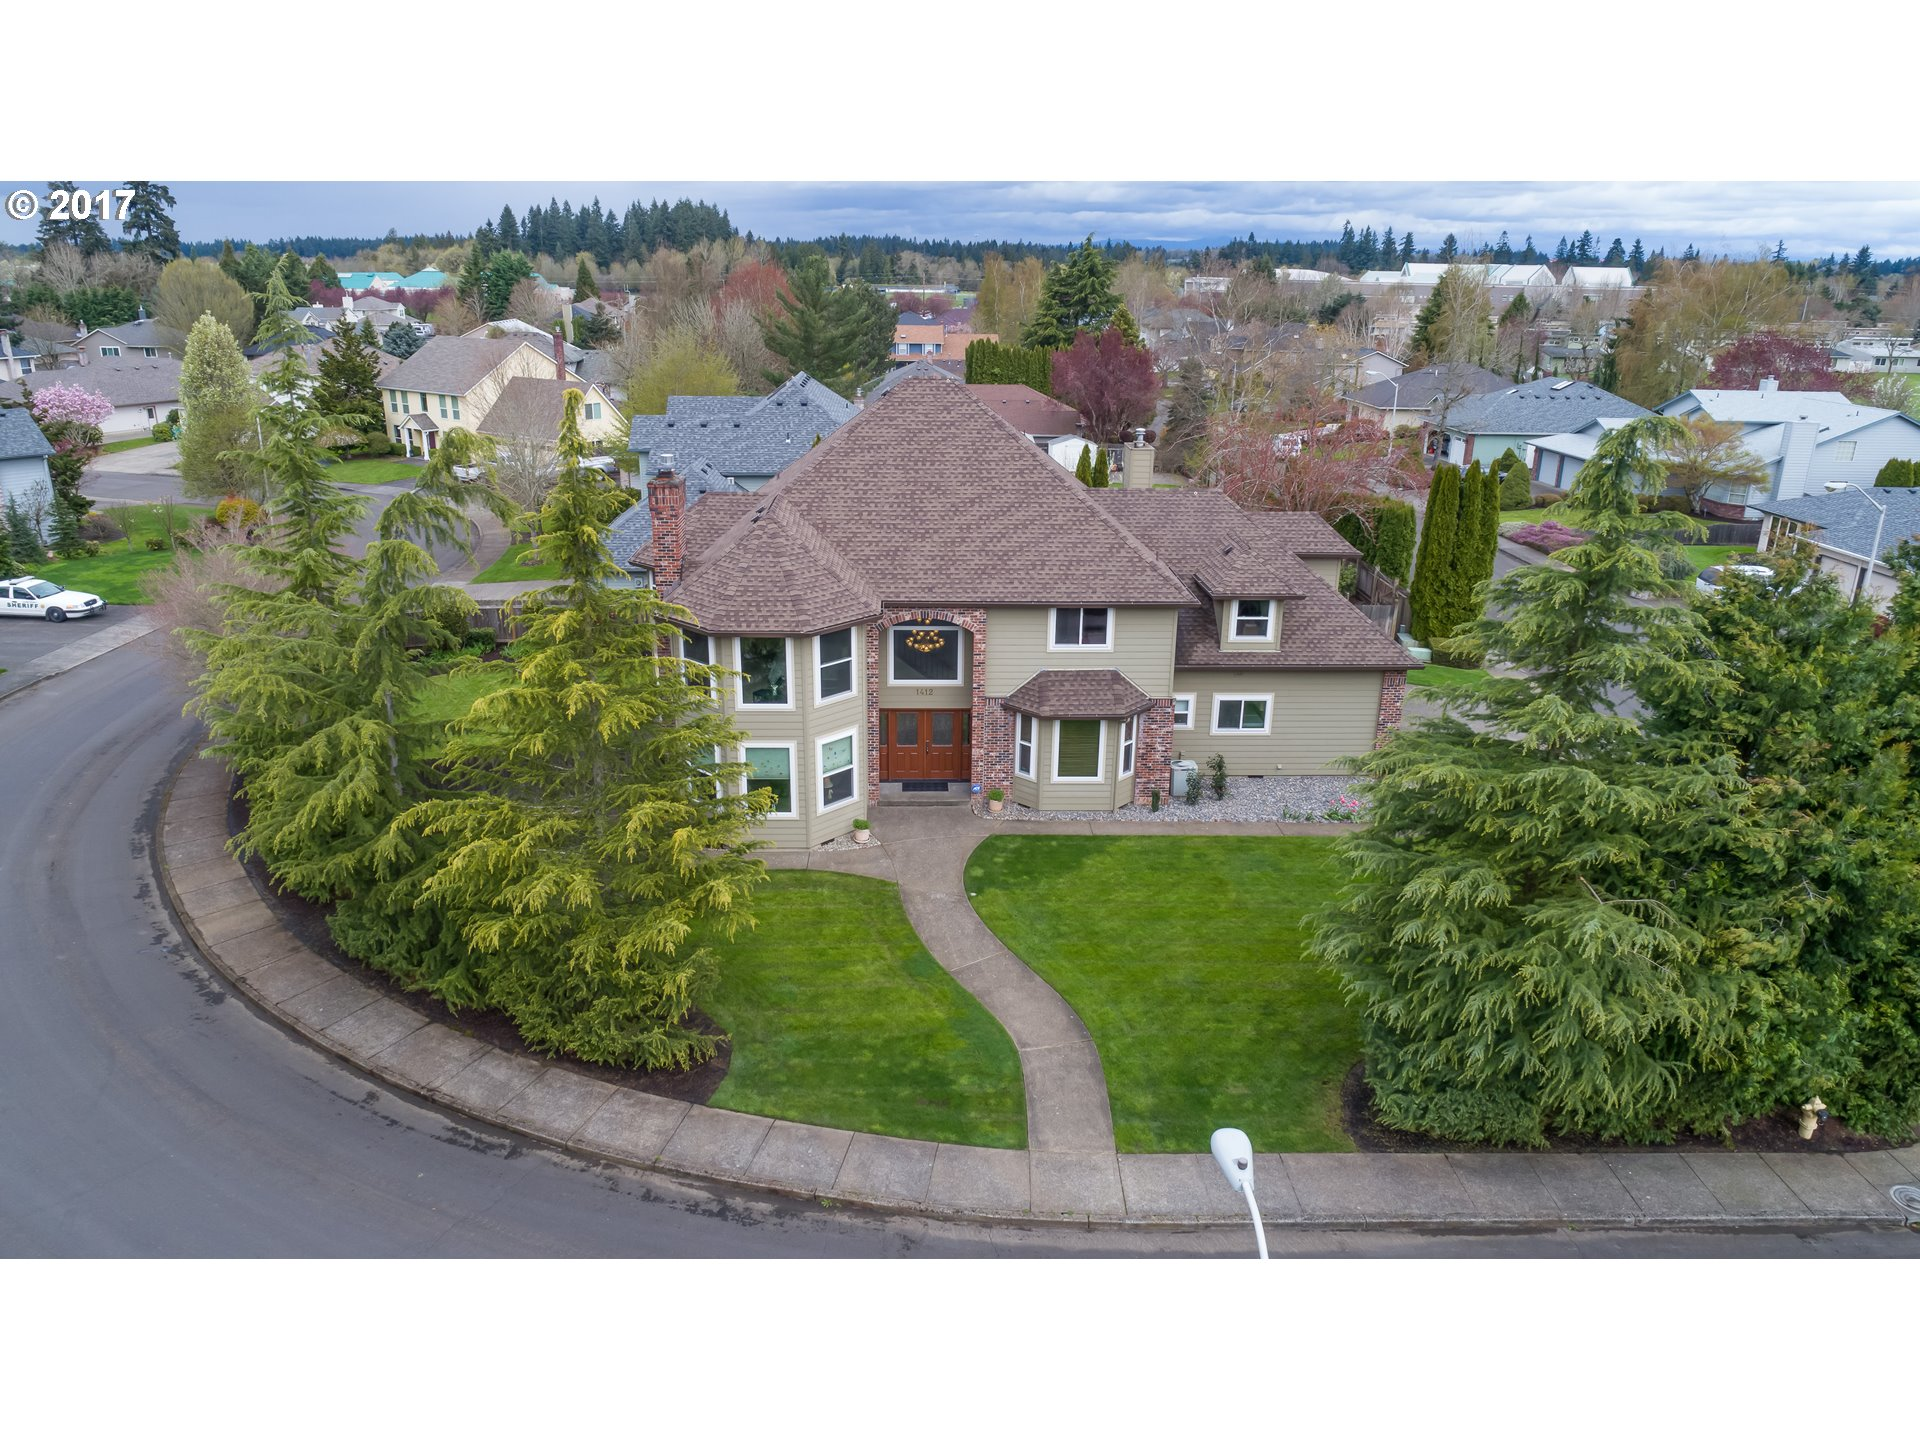 1412 NW 136TH ST, Vancouver, WA 98685